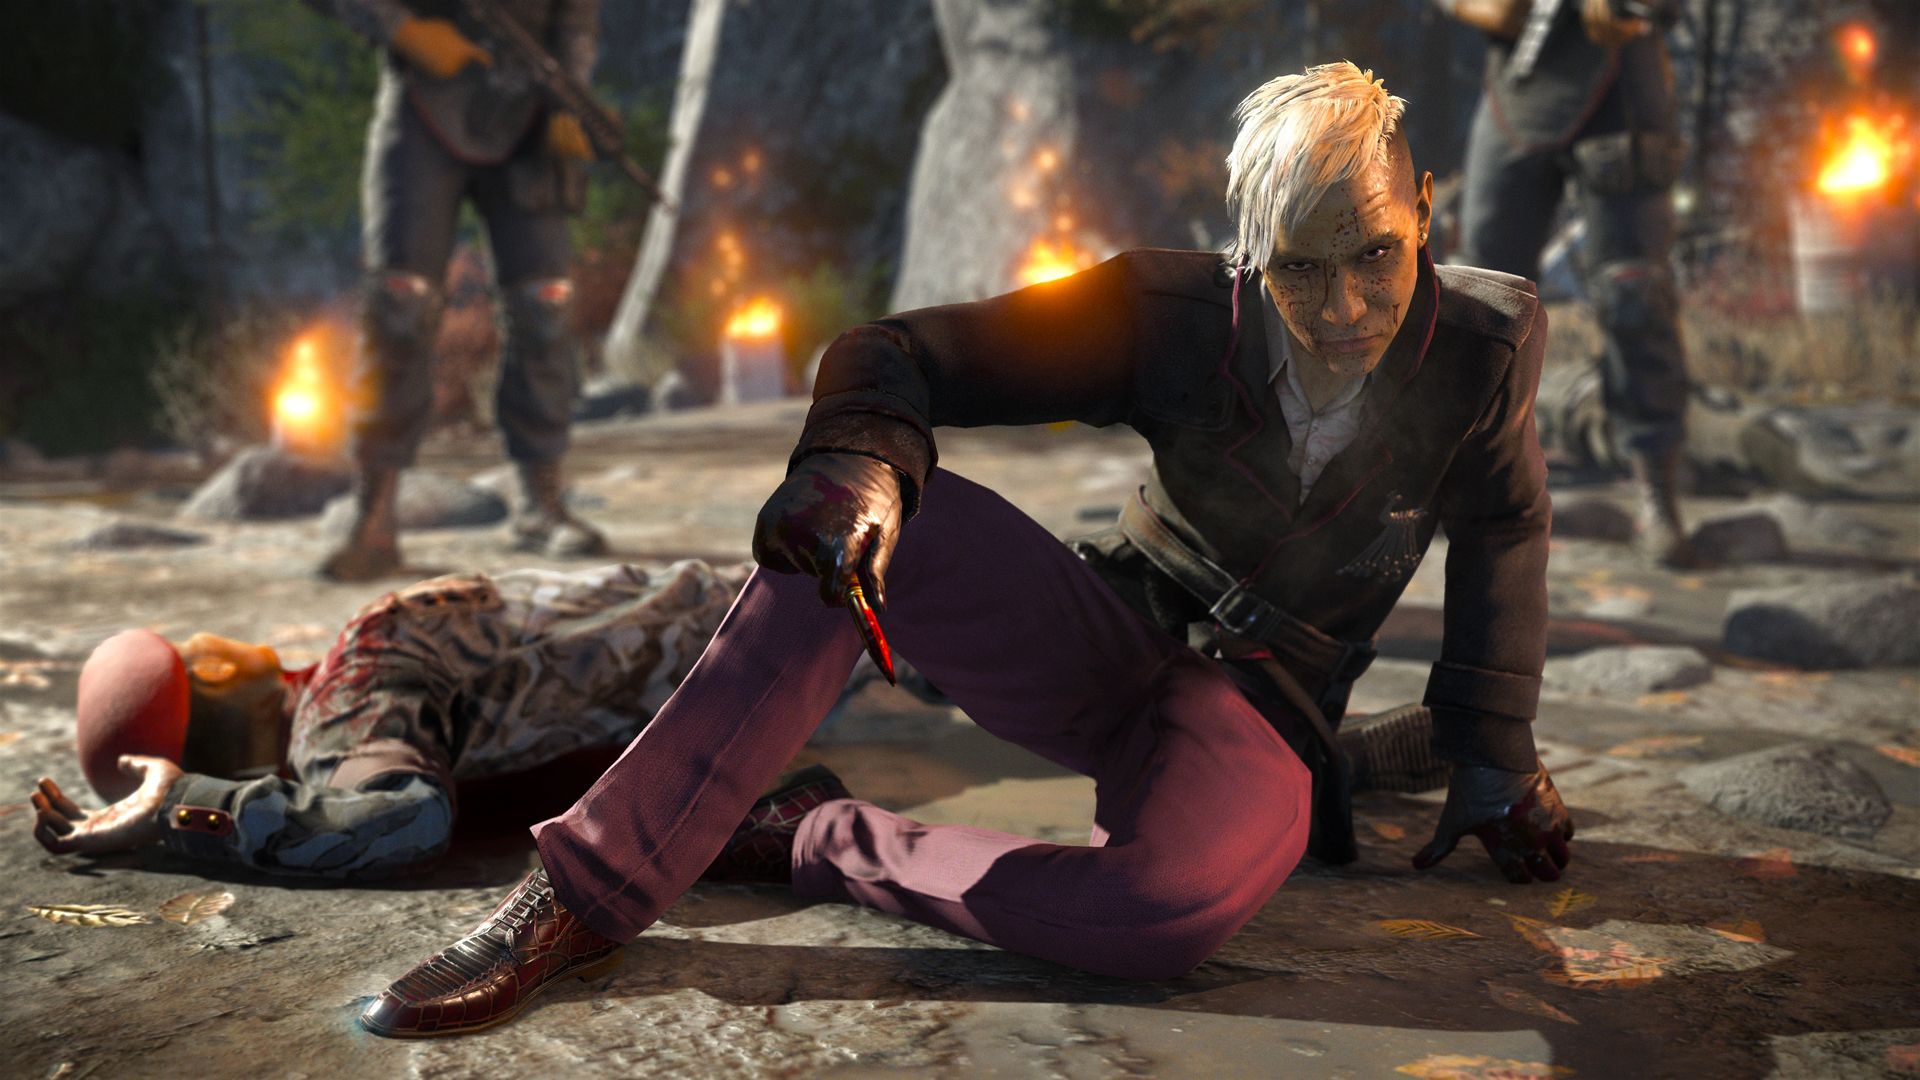 Far Cry 4's director details how its free multiplayer trial will work